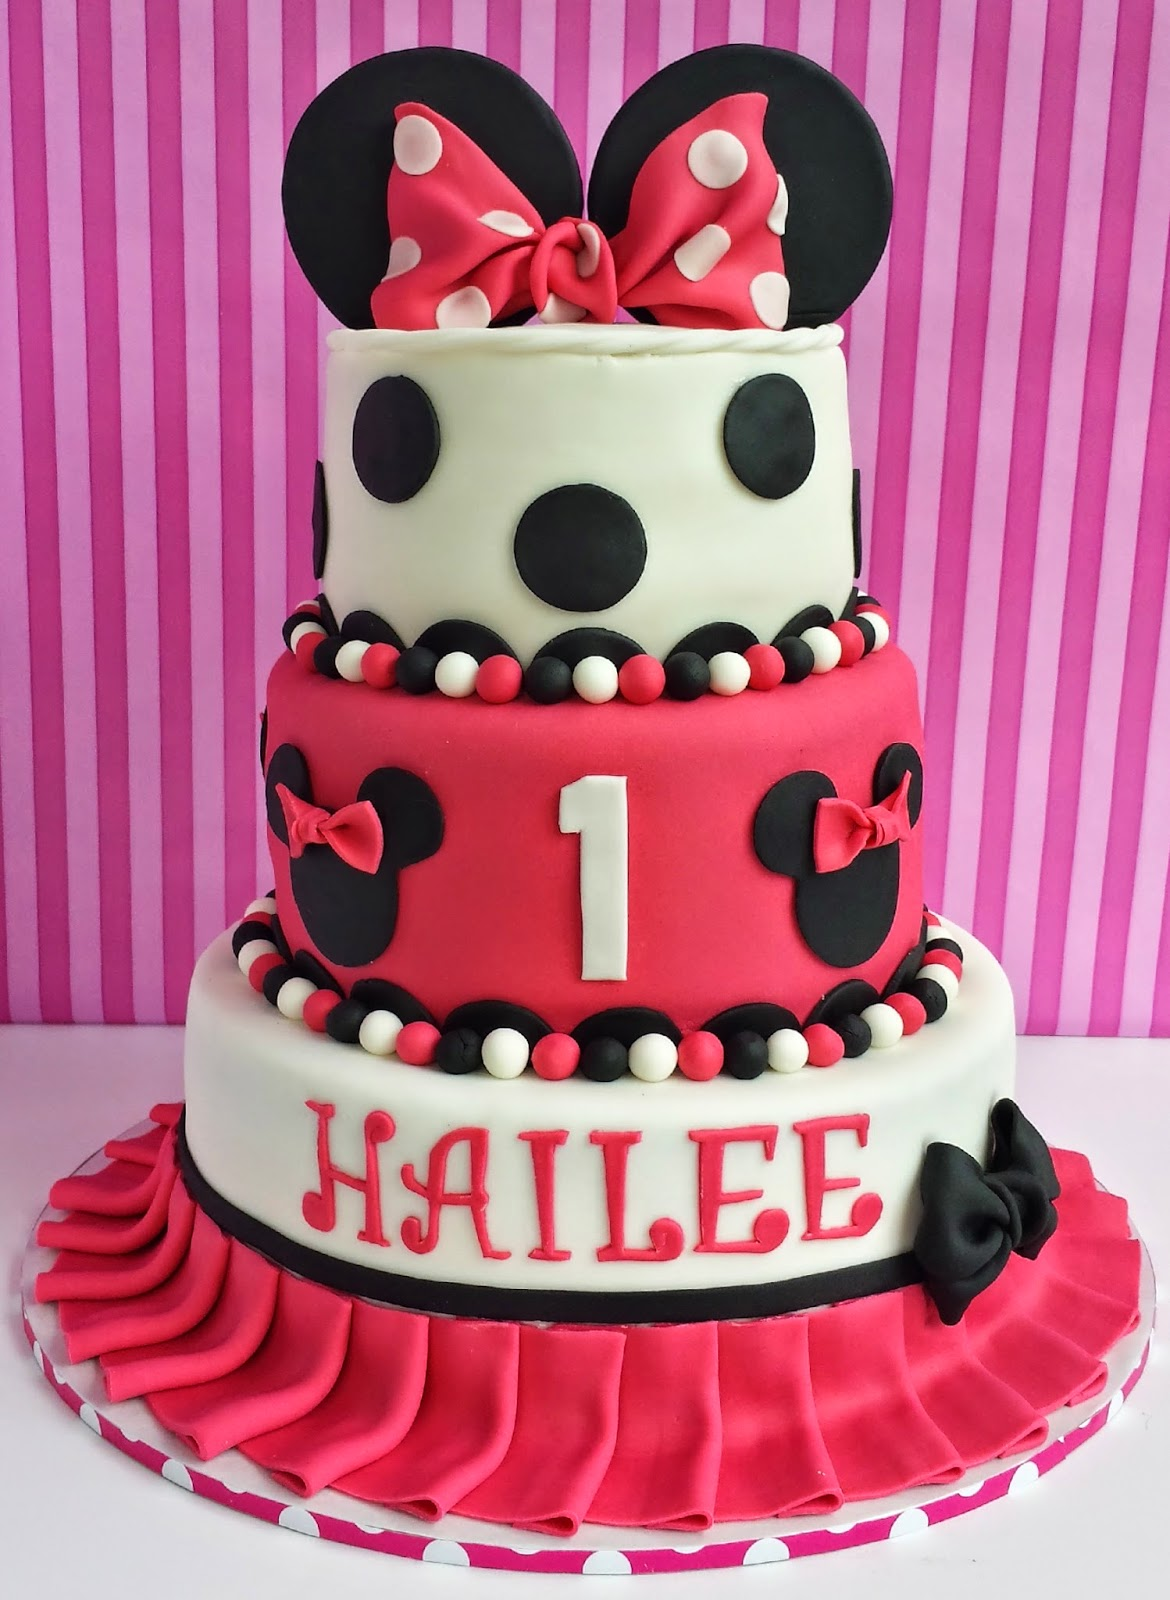 Minnie Mouse Images For Cake : Cake Blog: Minnie Mouse Cake Tutorial